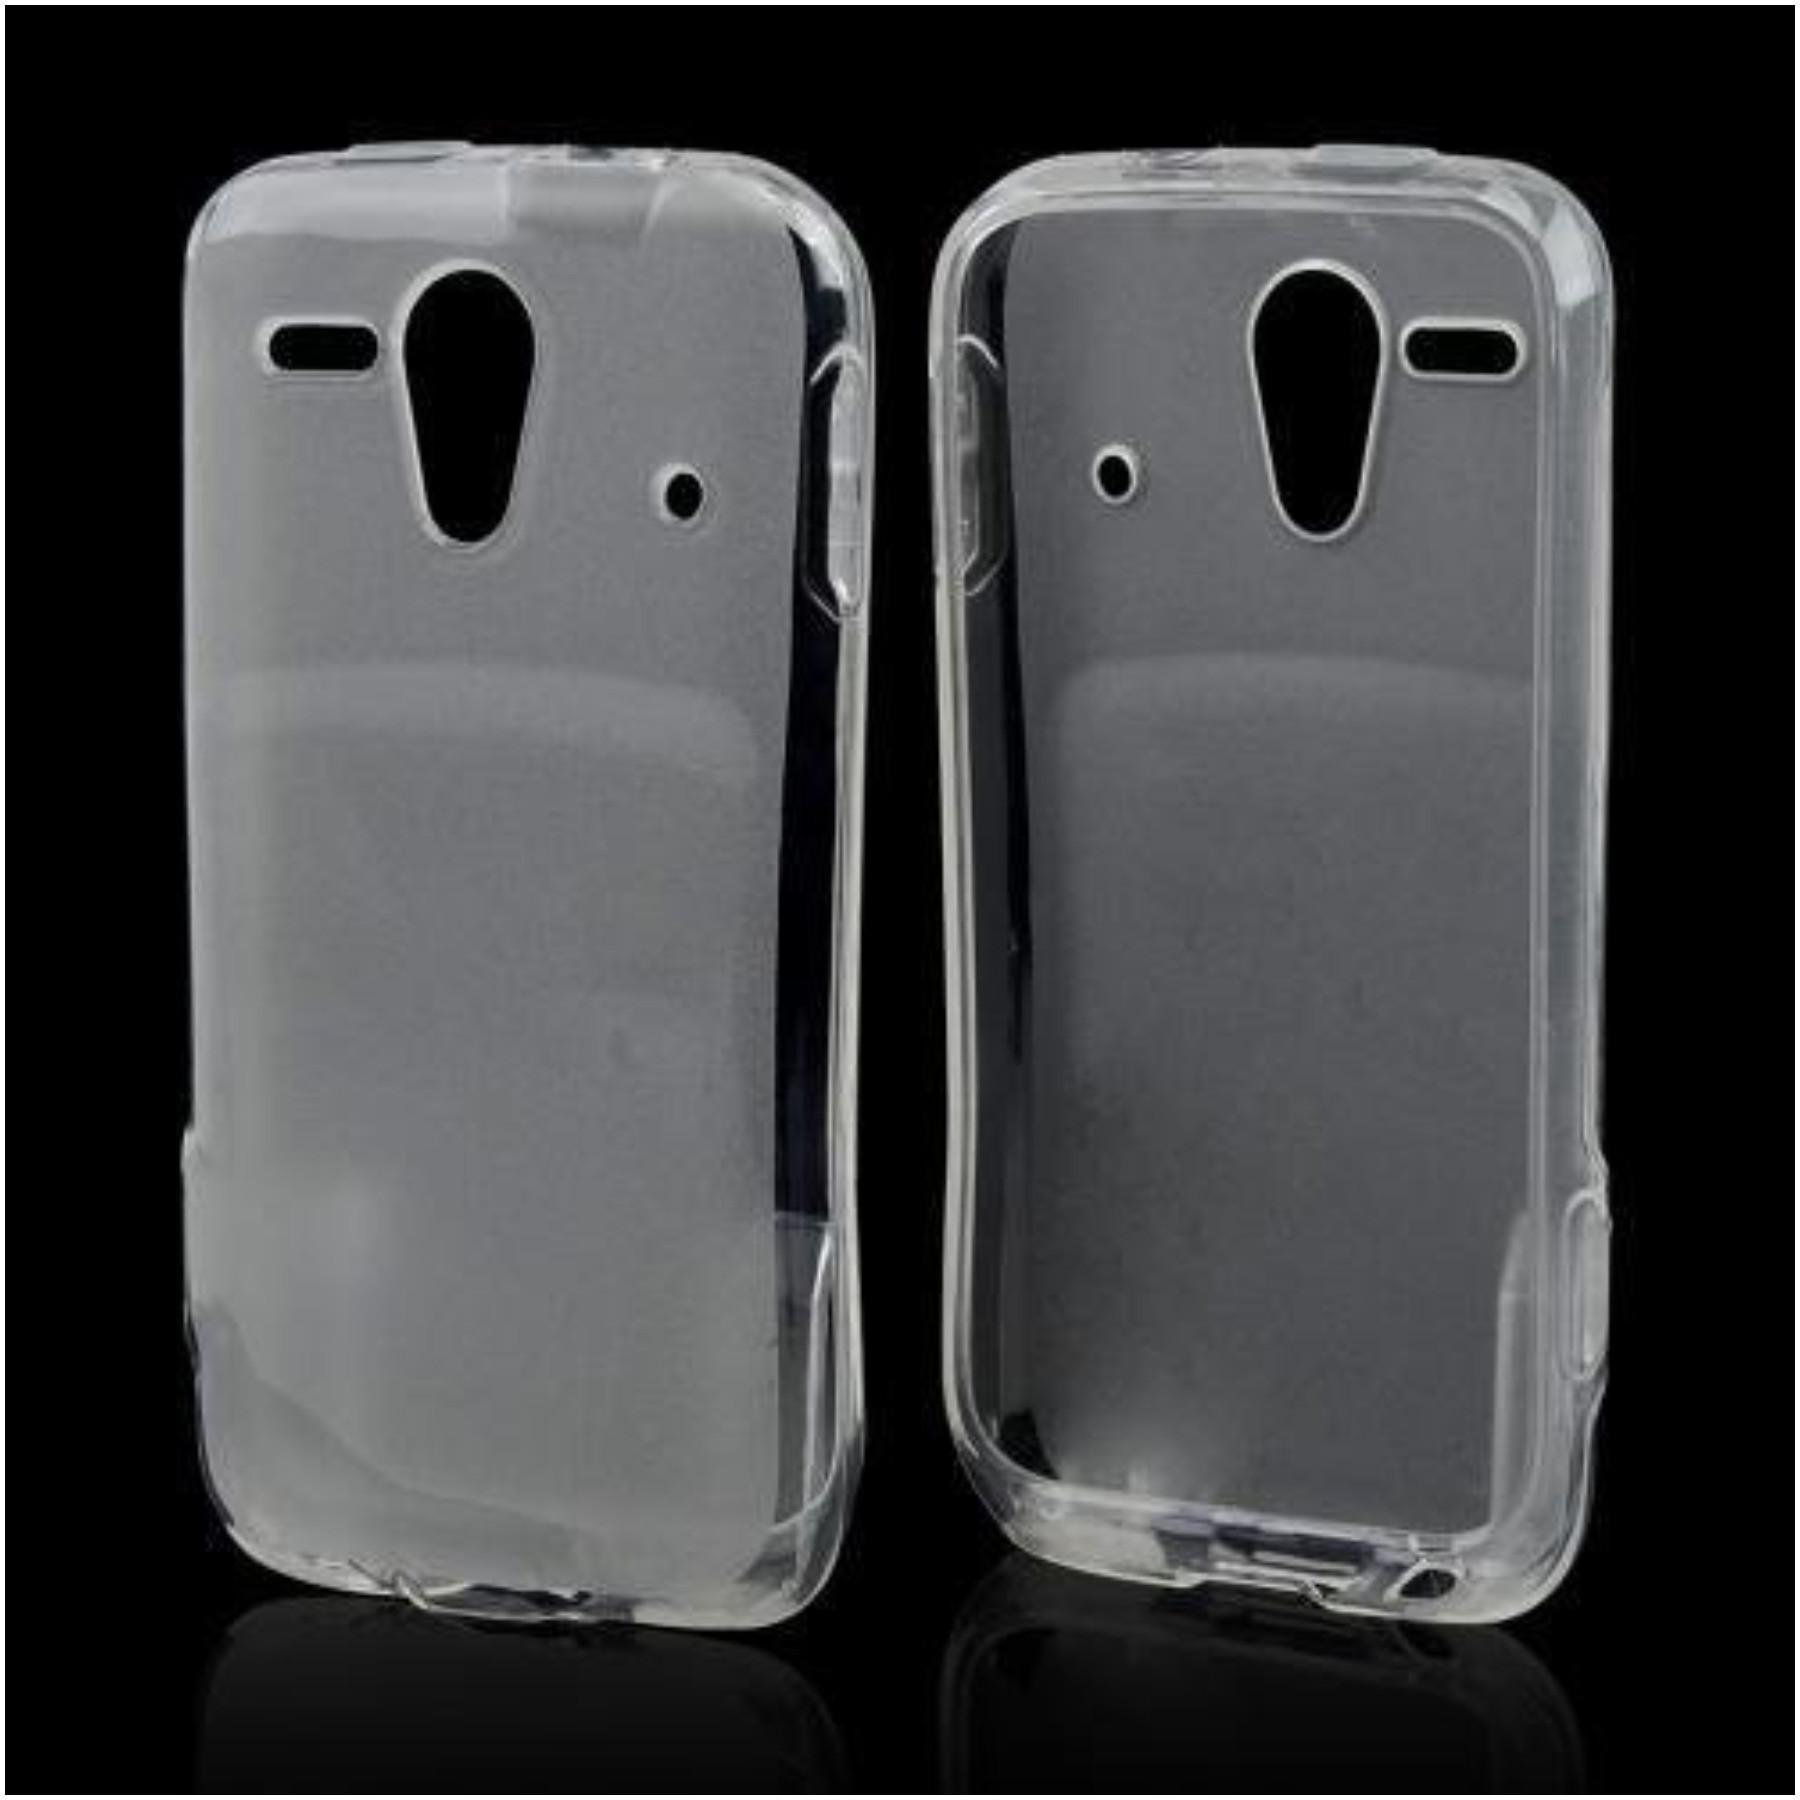 Clear Kyocera Hydro Edge Tpu Gel Case Cover Anti Slip